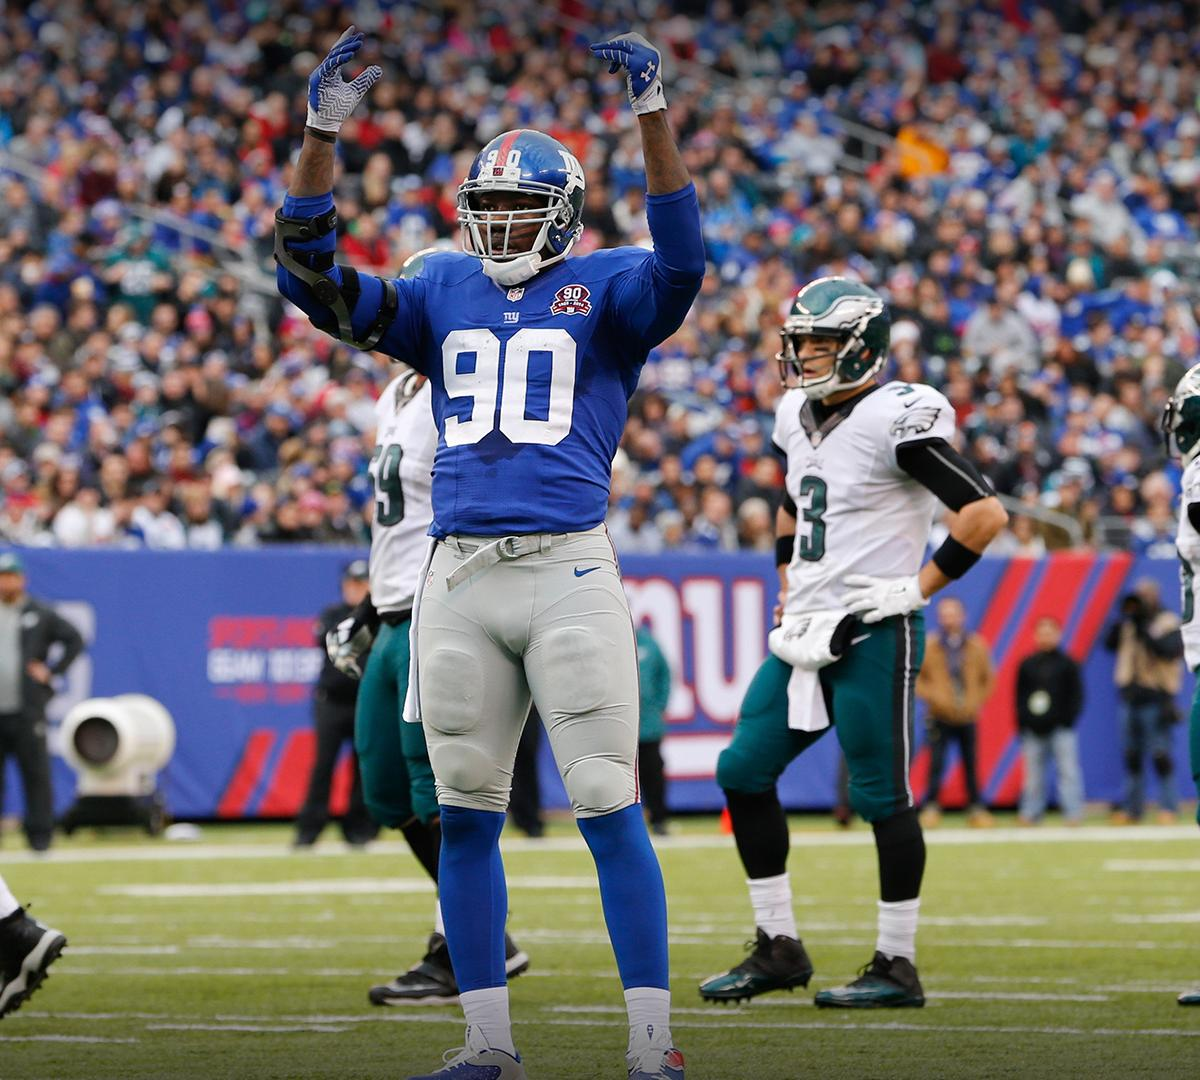 Insider Buzz: JPP Considering Holdout, Wants Giants To Pay